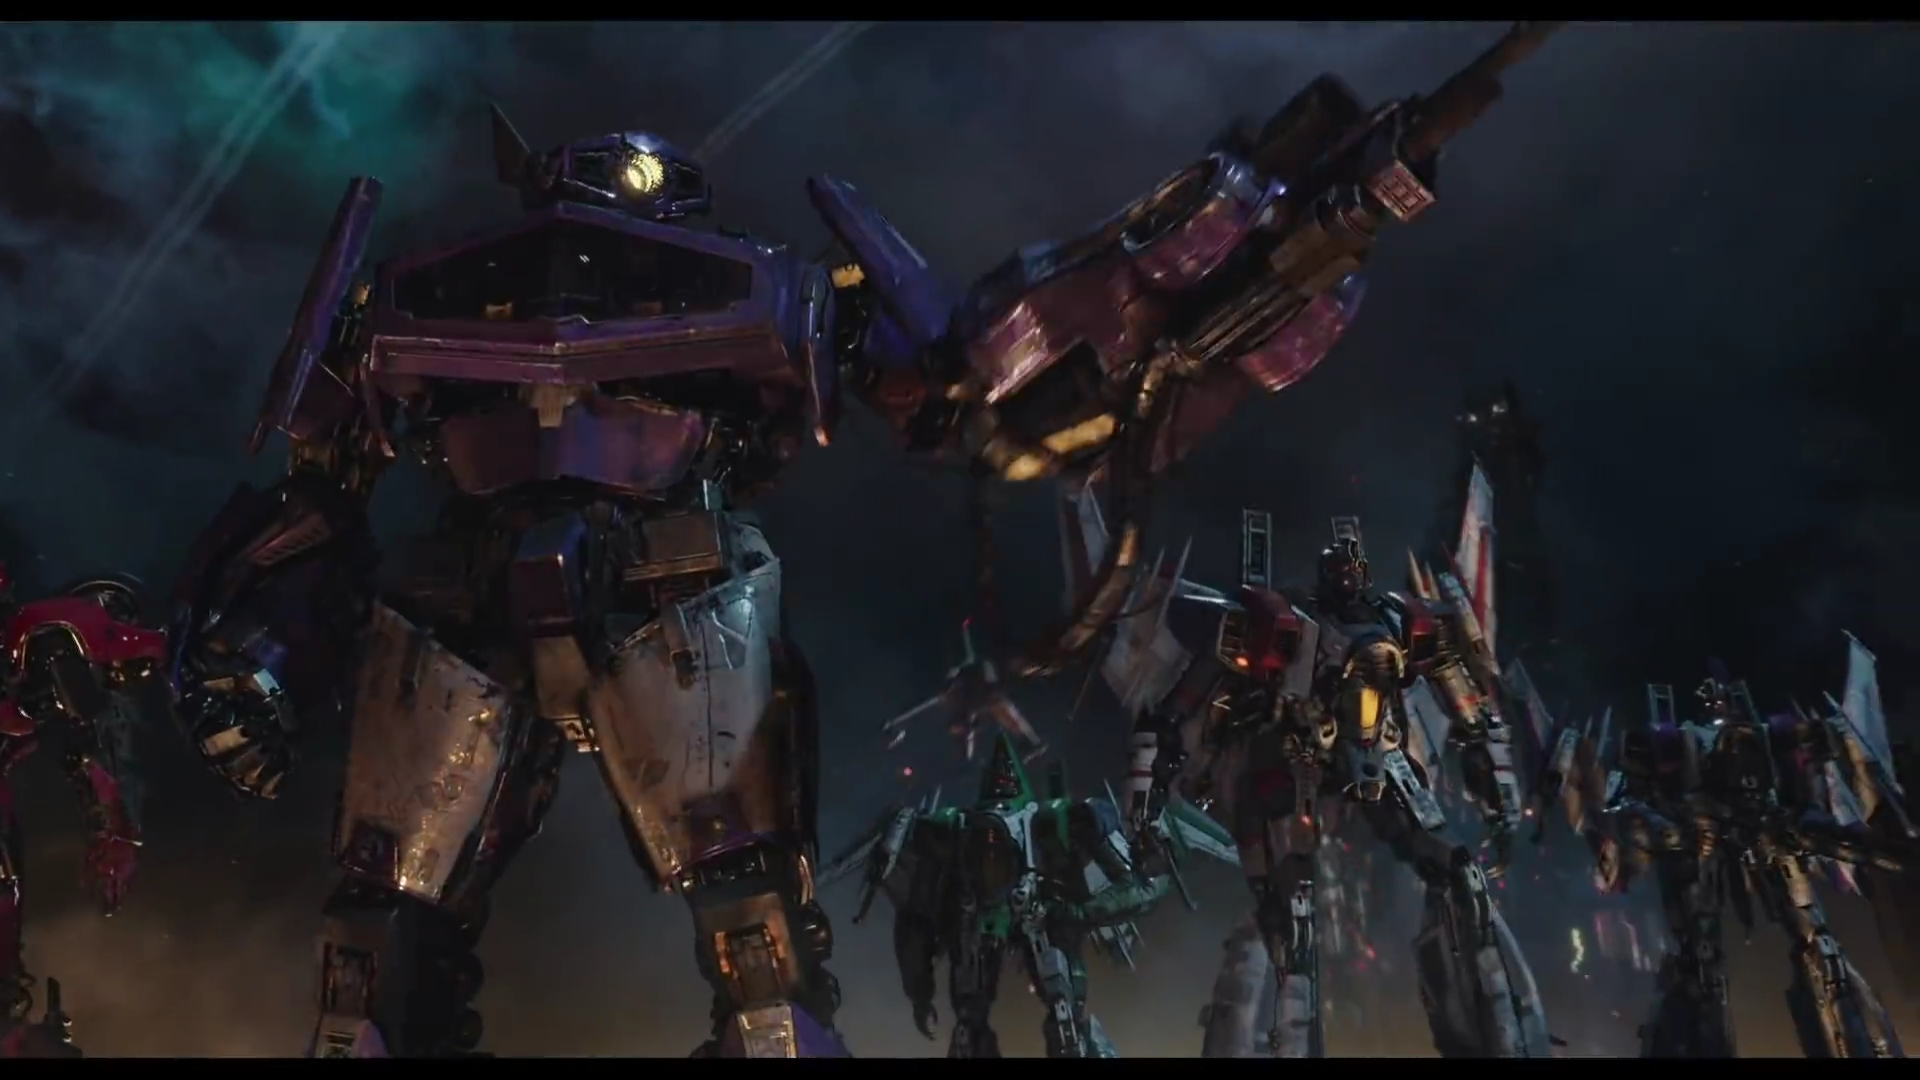 The REAL Optimus Prime Battles Soundwave and Ravage in the new Bumblebee Trailer